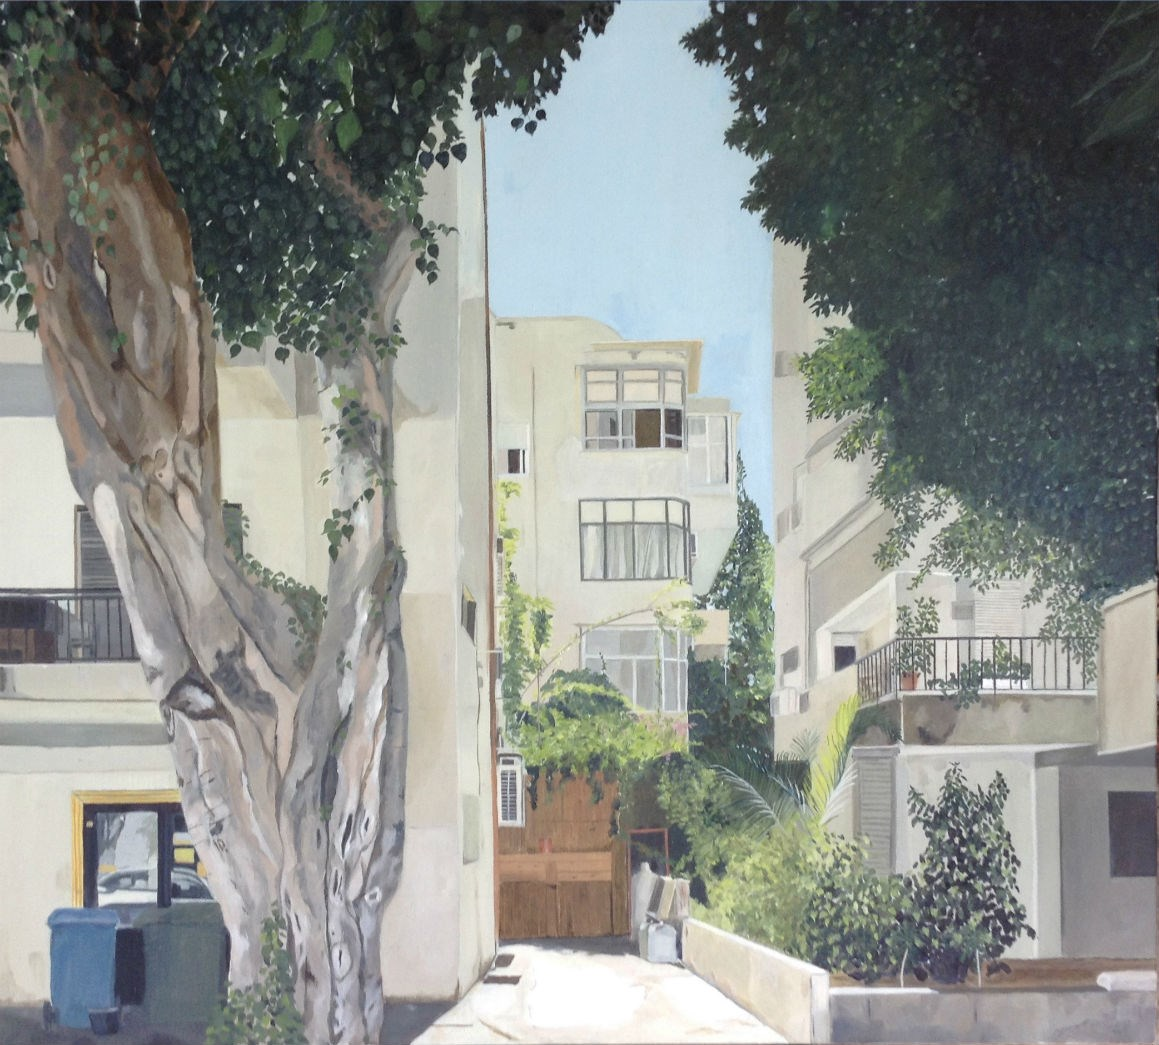 Tel Aviv_ White city II - זהר פלקס